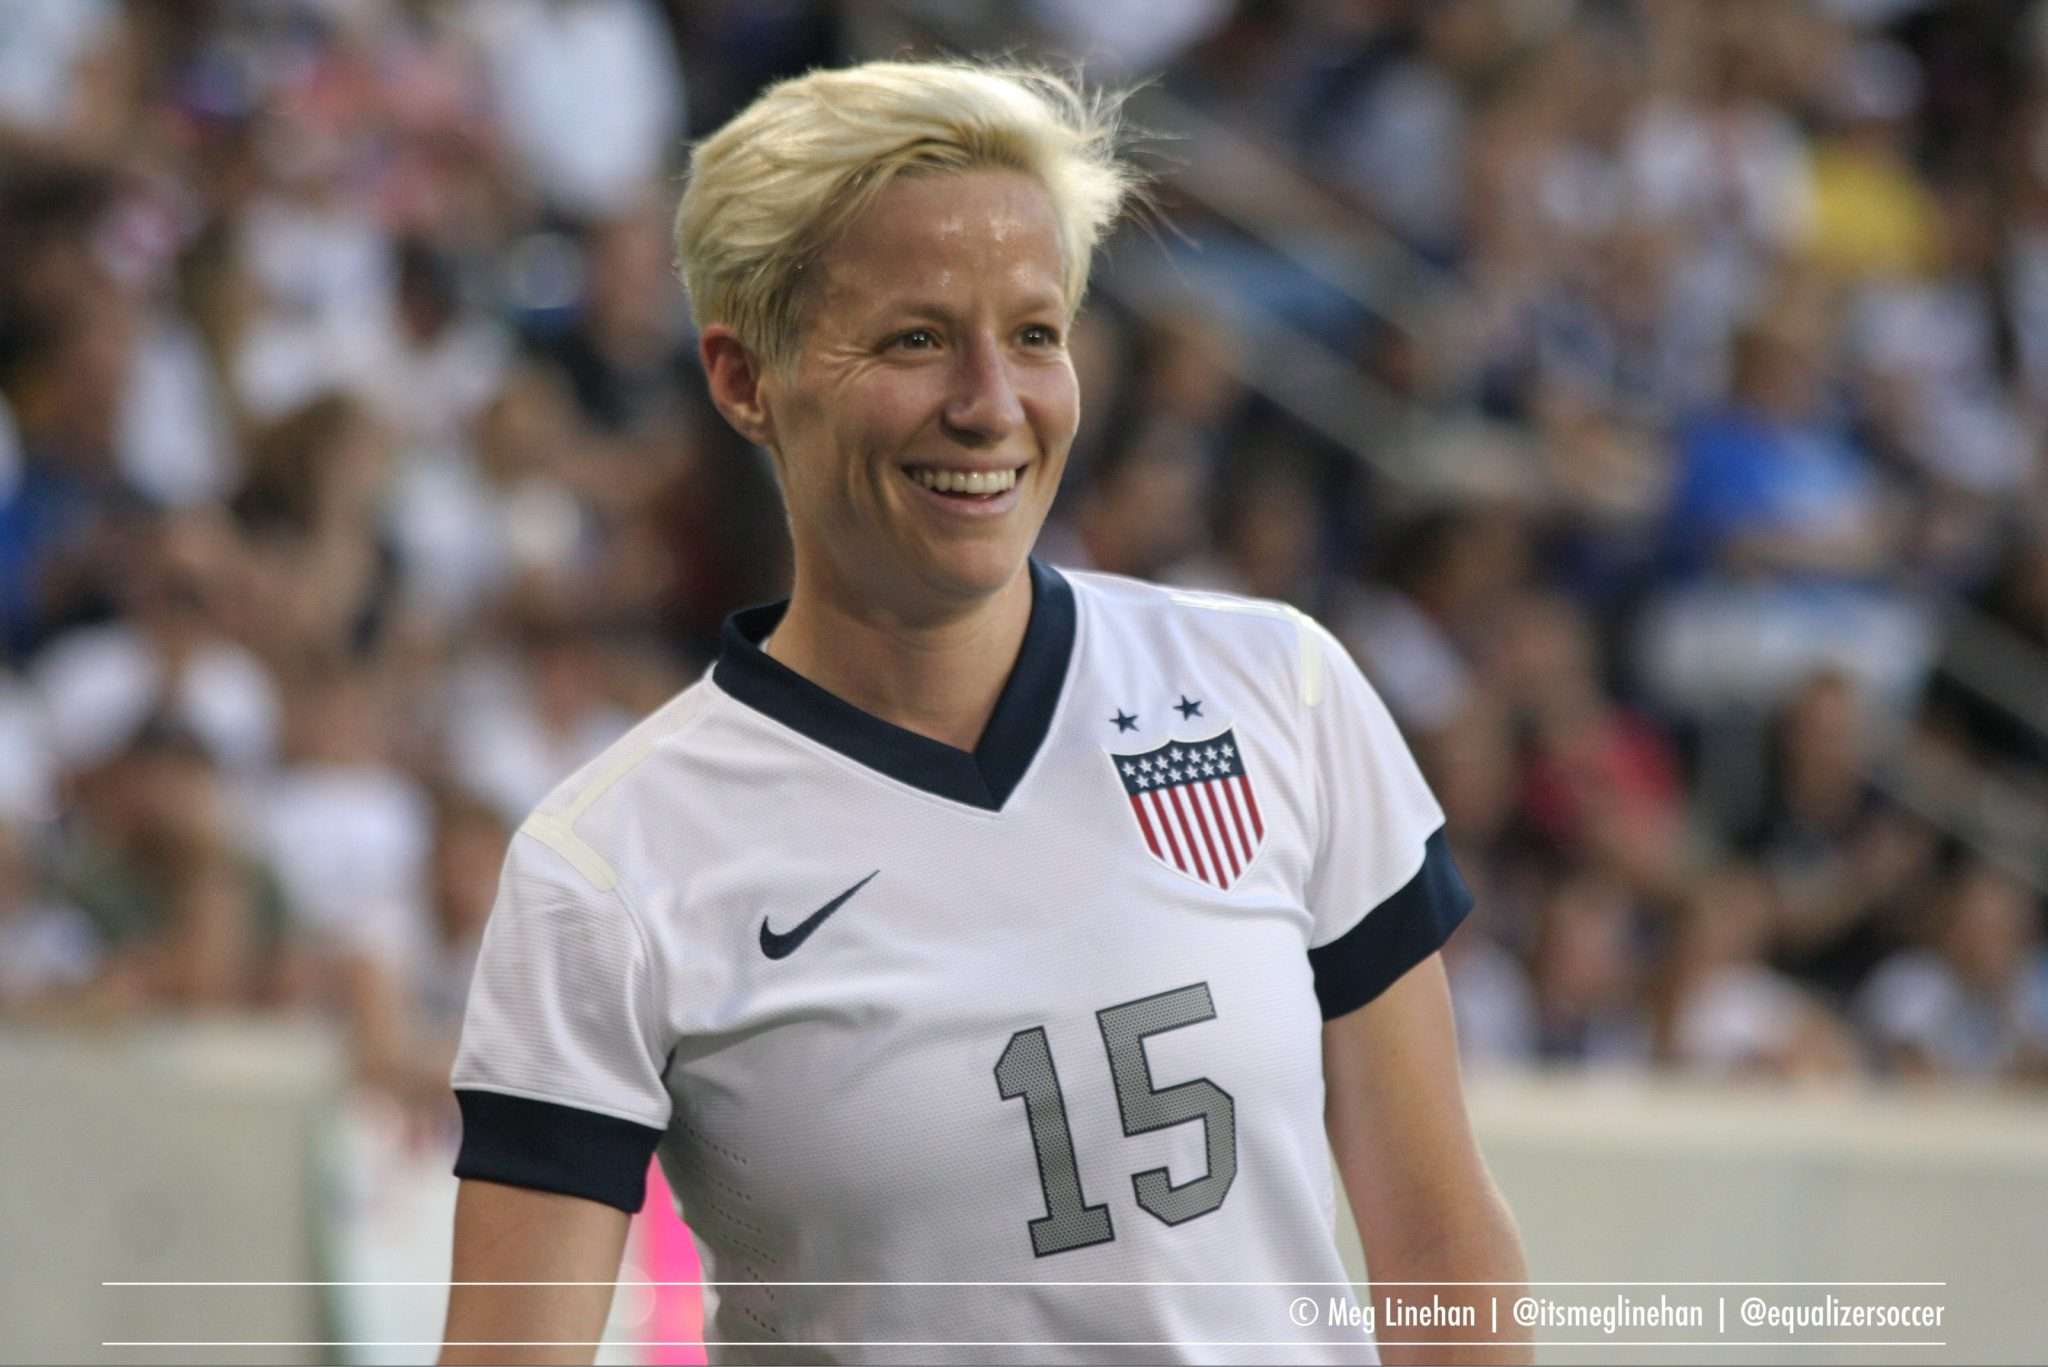 Megan Rapinoe scored in the United States' 2-0 victory over China on Sunday. (Photo copyright Meg Linehan for The Equalizer)